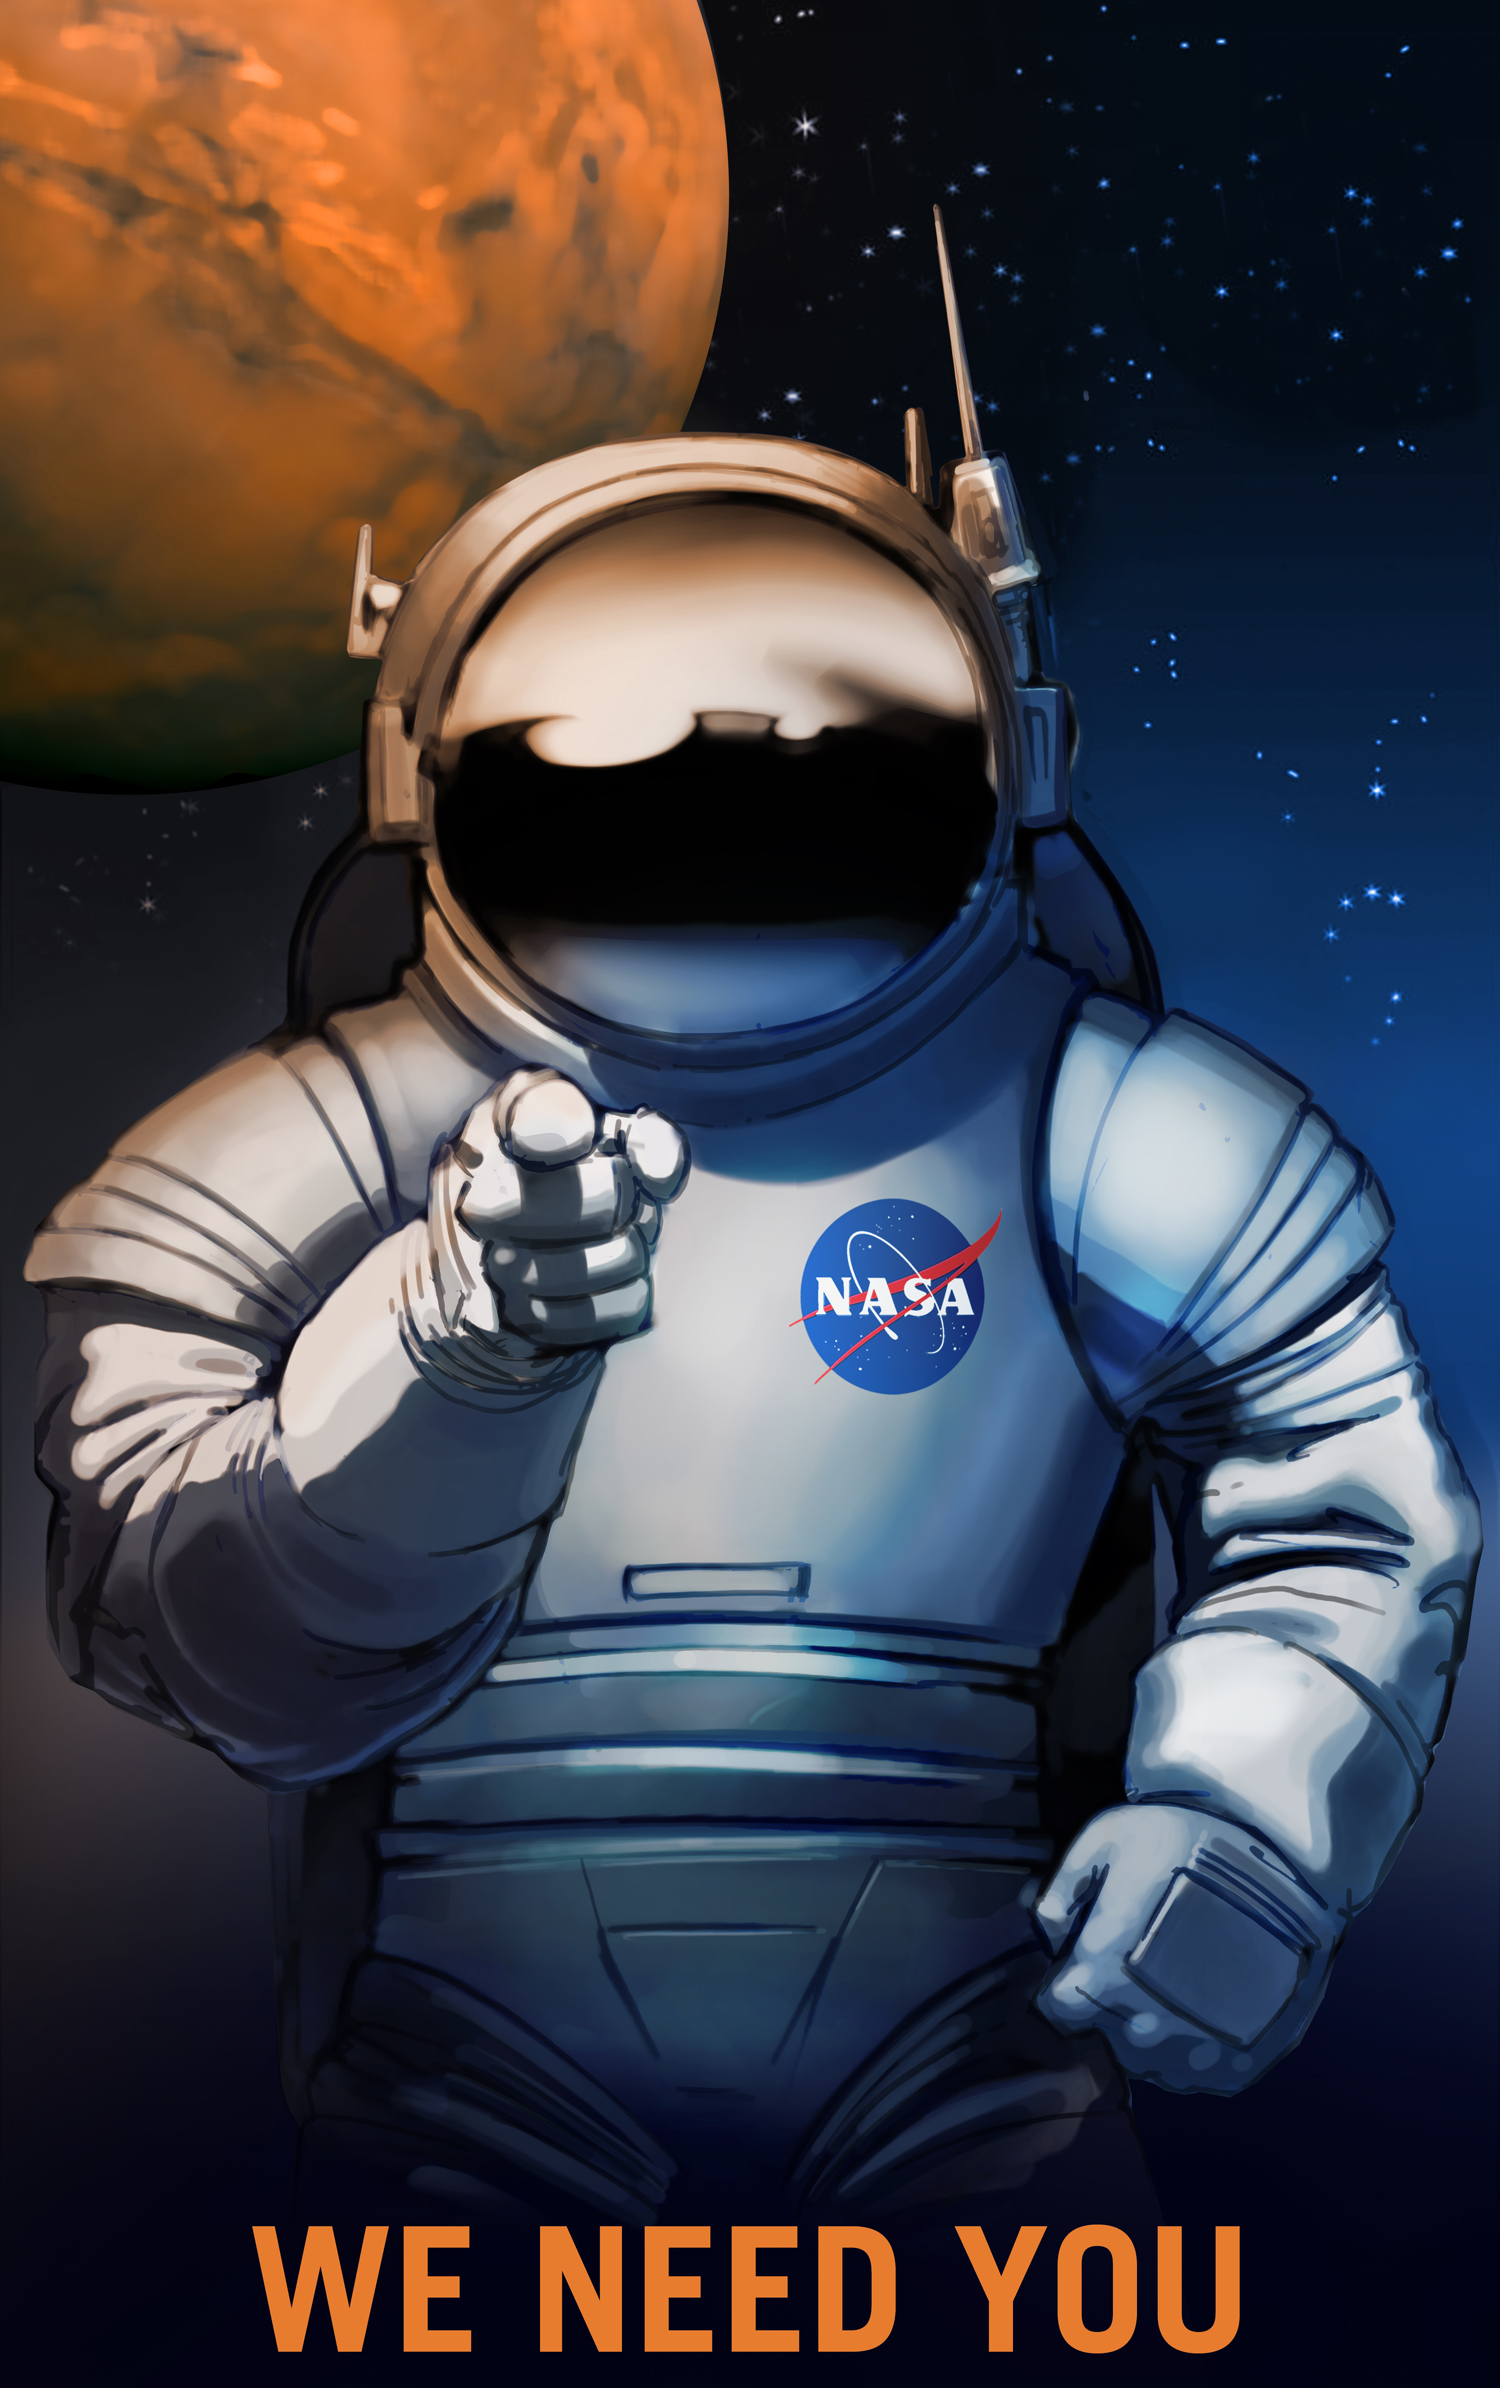 nasa's journey to mars wanted posters